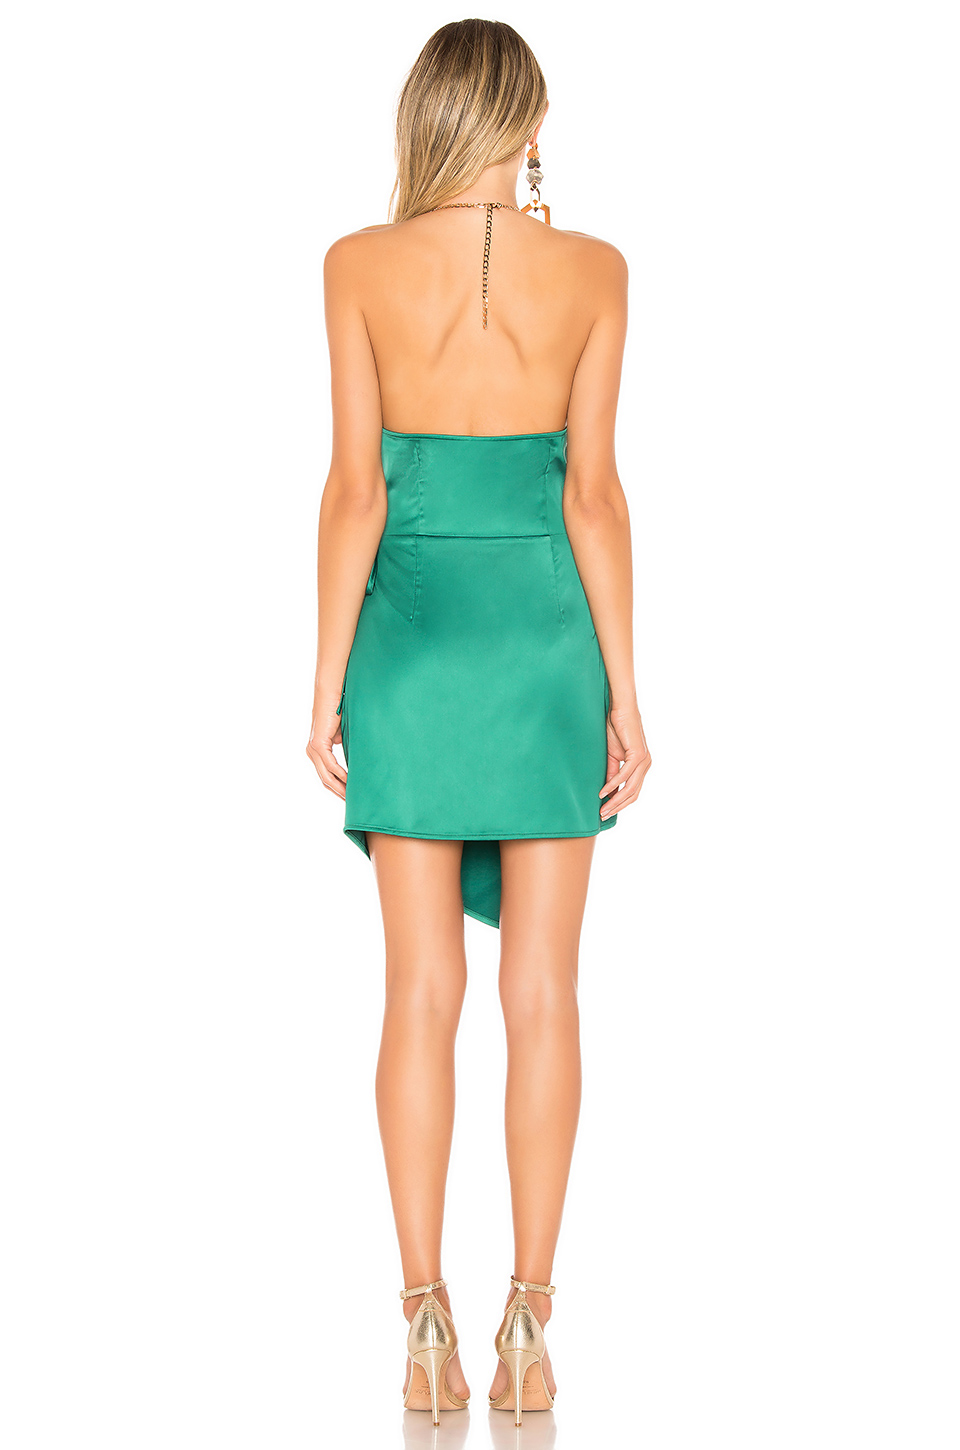 h:ours Valencia Mini Dress